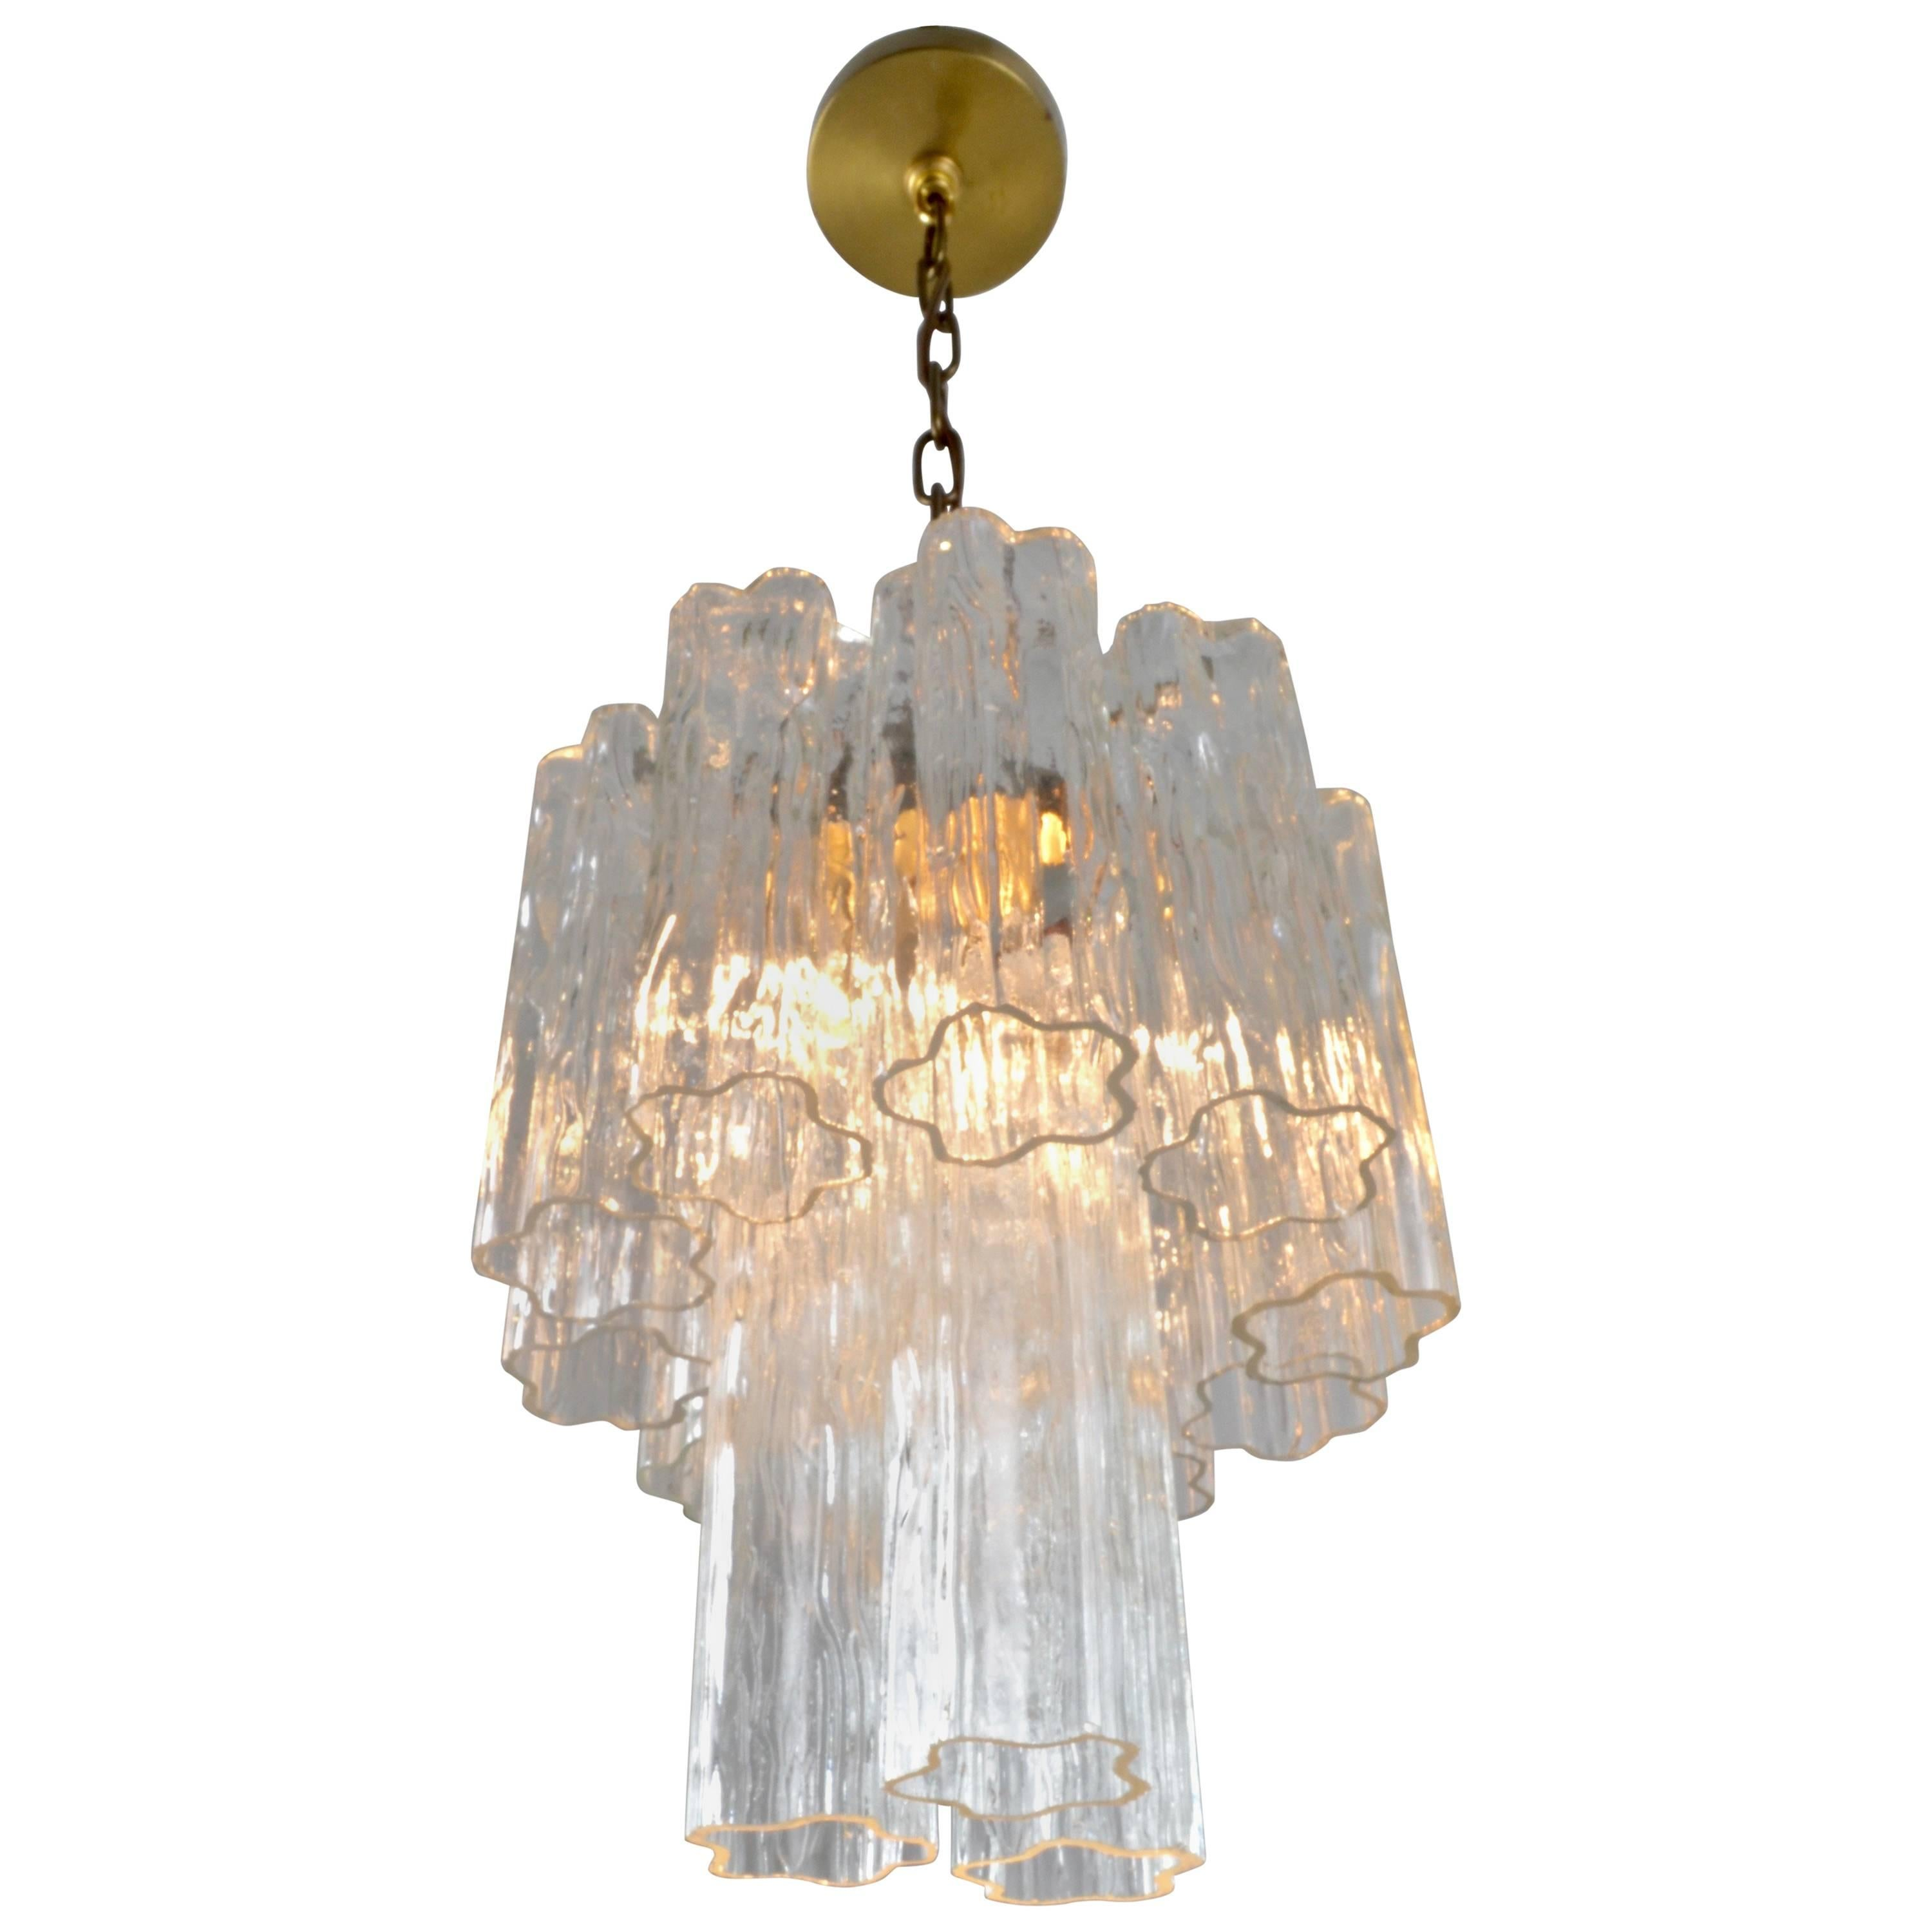 Murano Glass Tronchi Chandelier, Italy, 1960s, Petite Size